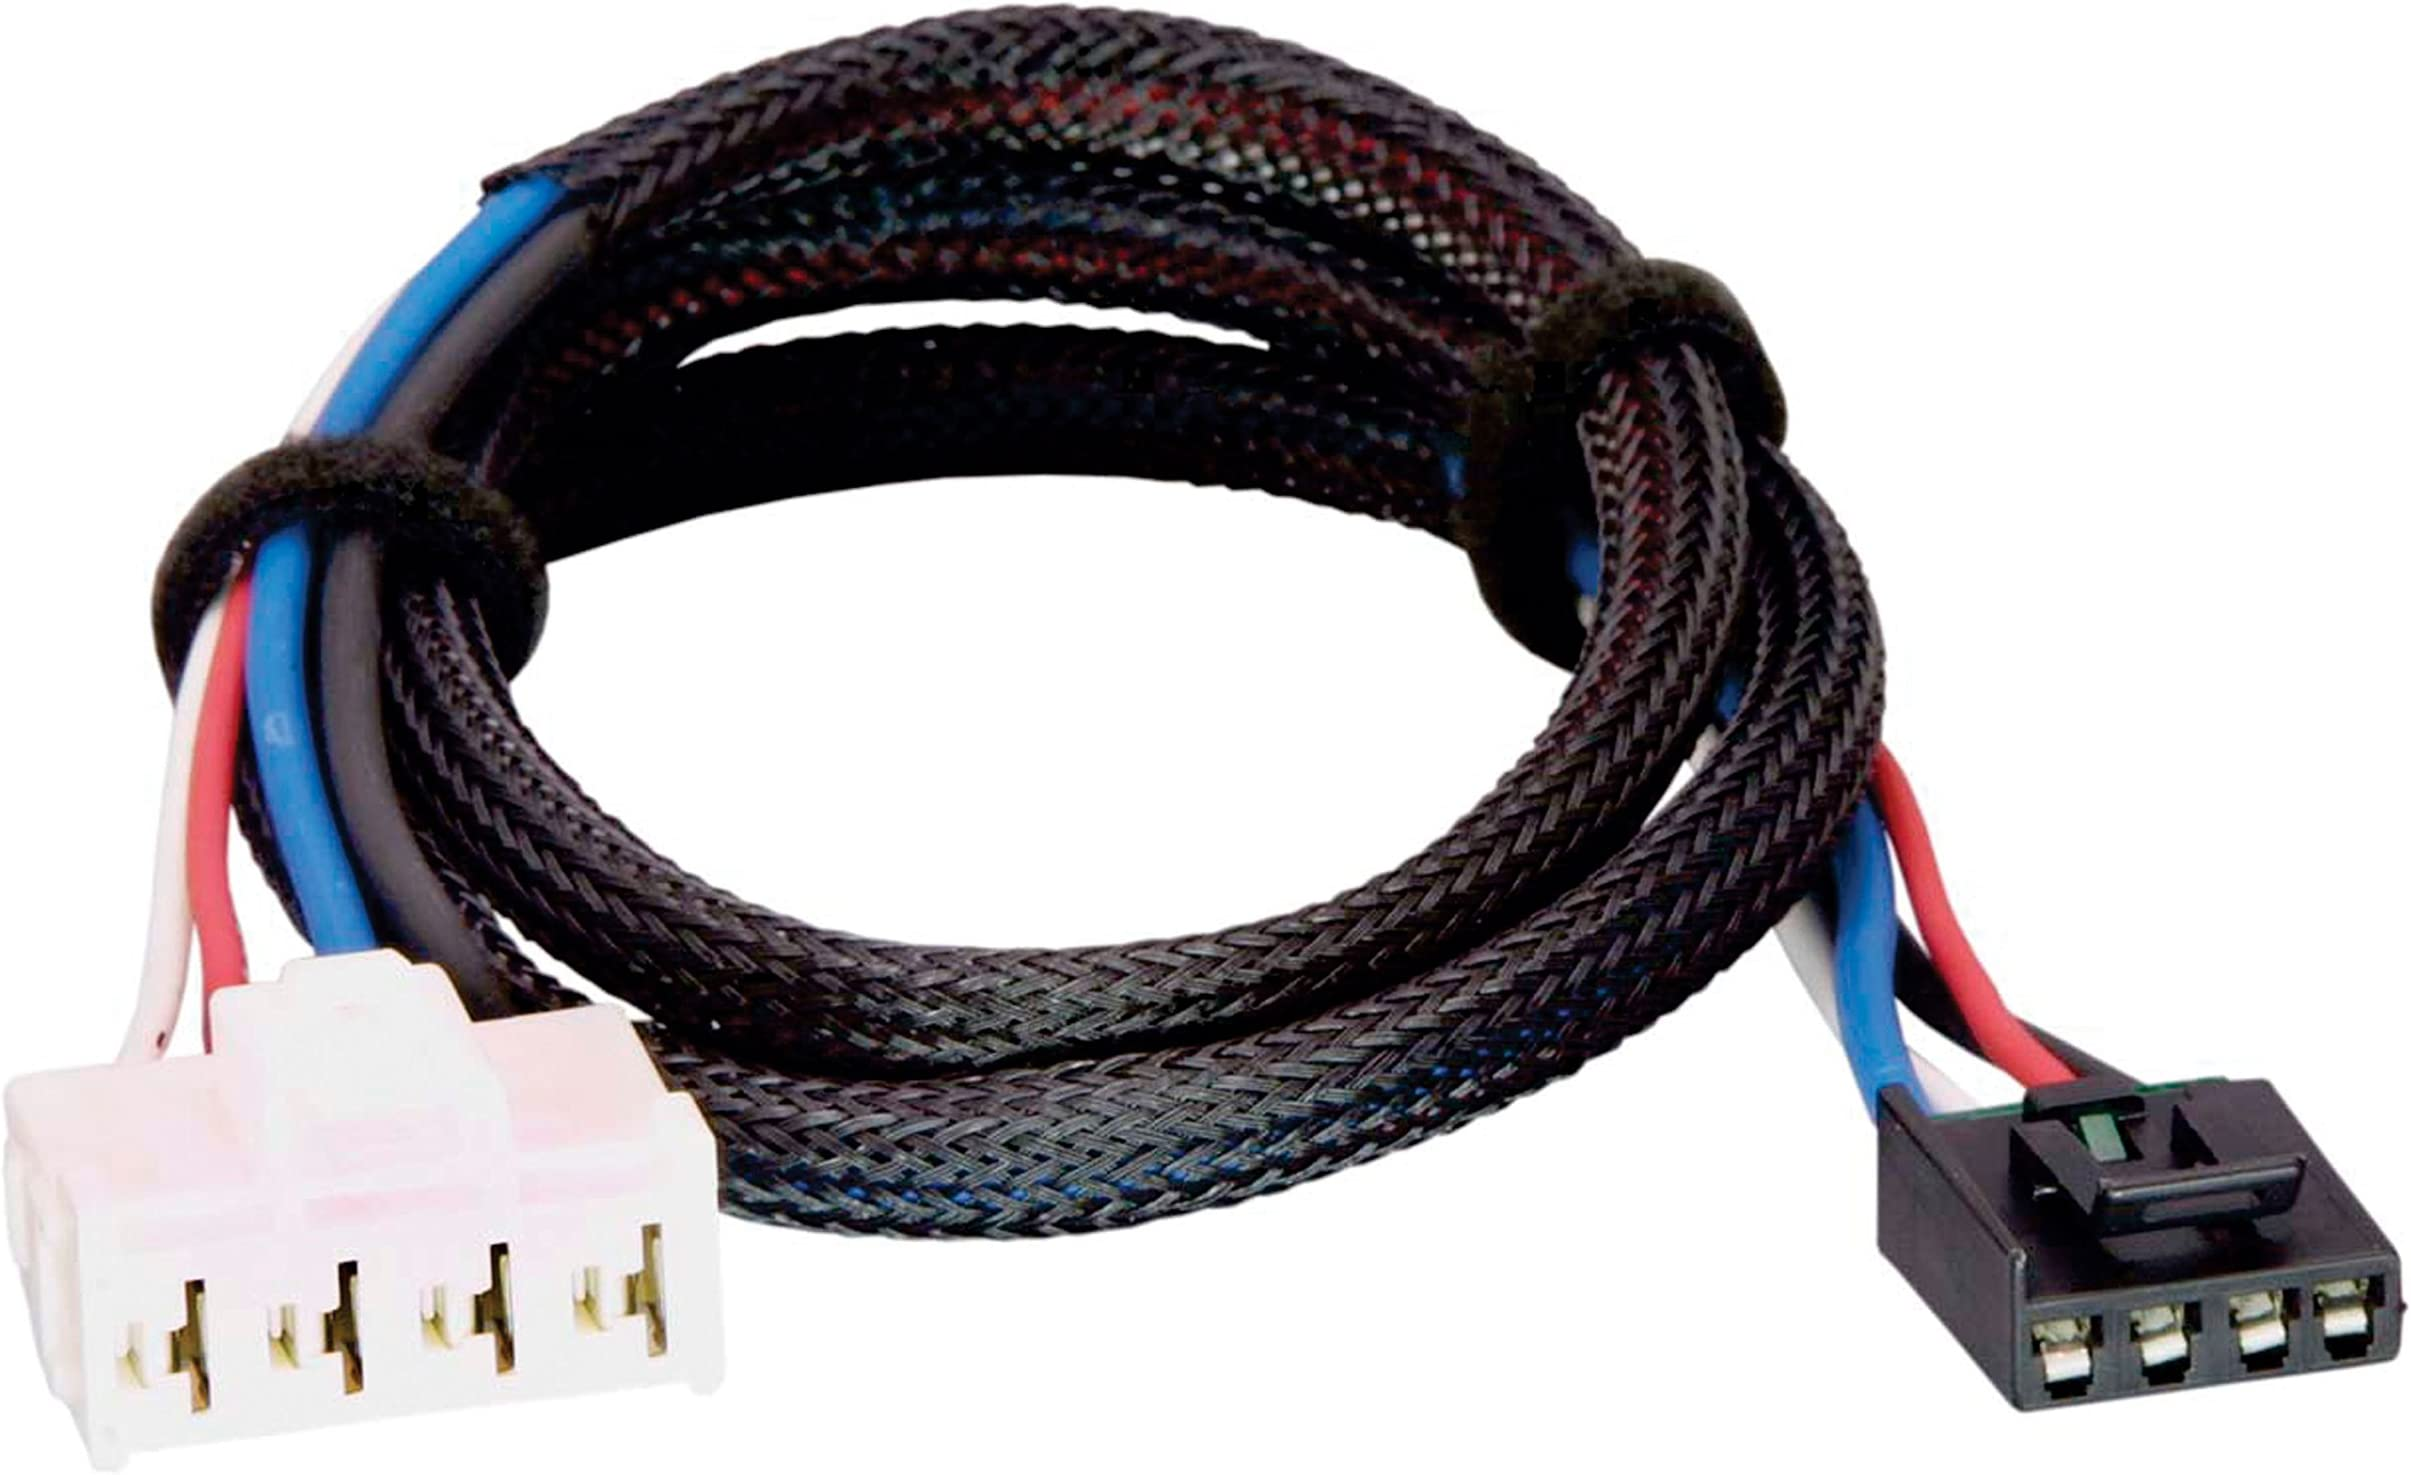 81EeTVZs4ZL._AC_SR201266_ 2005 keystone outback wiring diagram 2005 keystone springdale Typical RV Wiring Diagram at panicattacktreatment.co